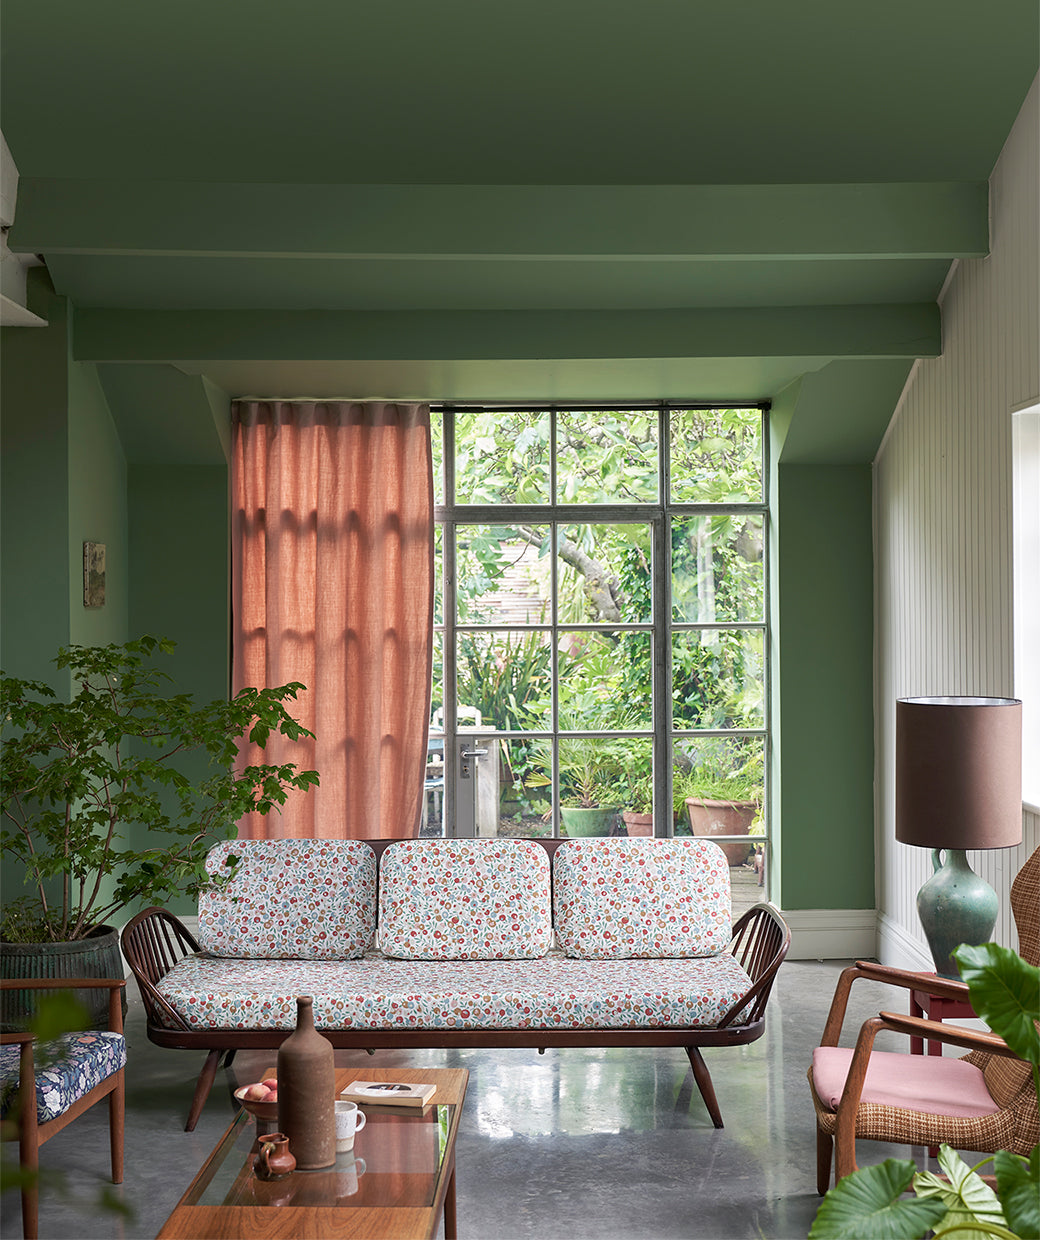 A green sitting room with pale pink drapes/Photography: Farrow & Ball/Farrow & Ball's Suffield Green and Modern Eggshell appear here with Wiltshire Blossom and Emberton Linen designs from Liberty.